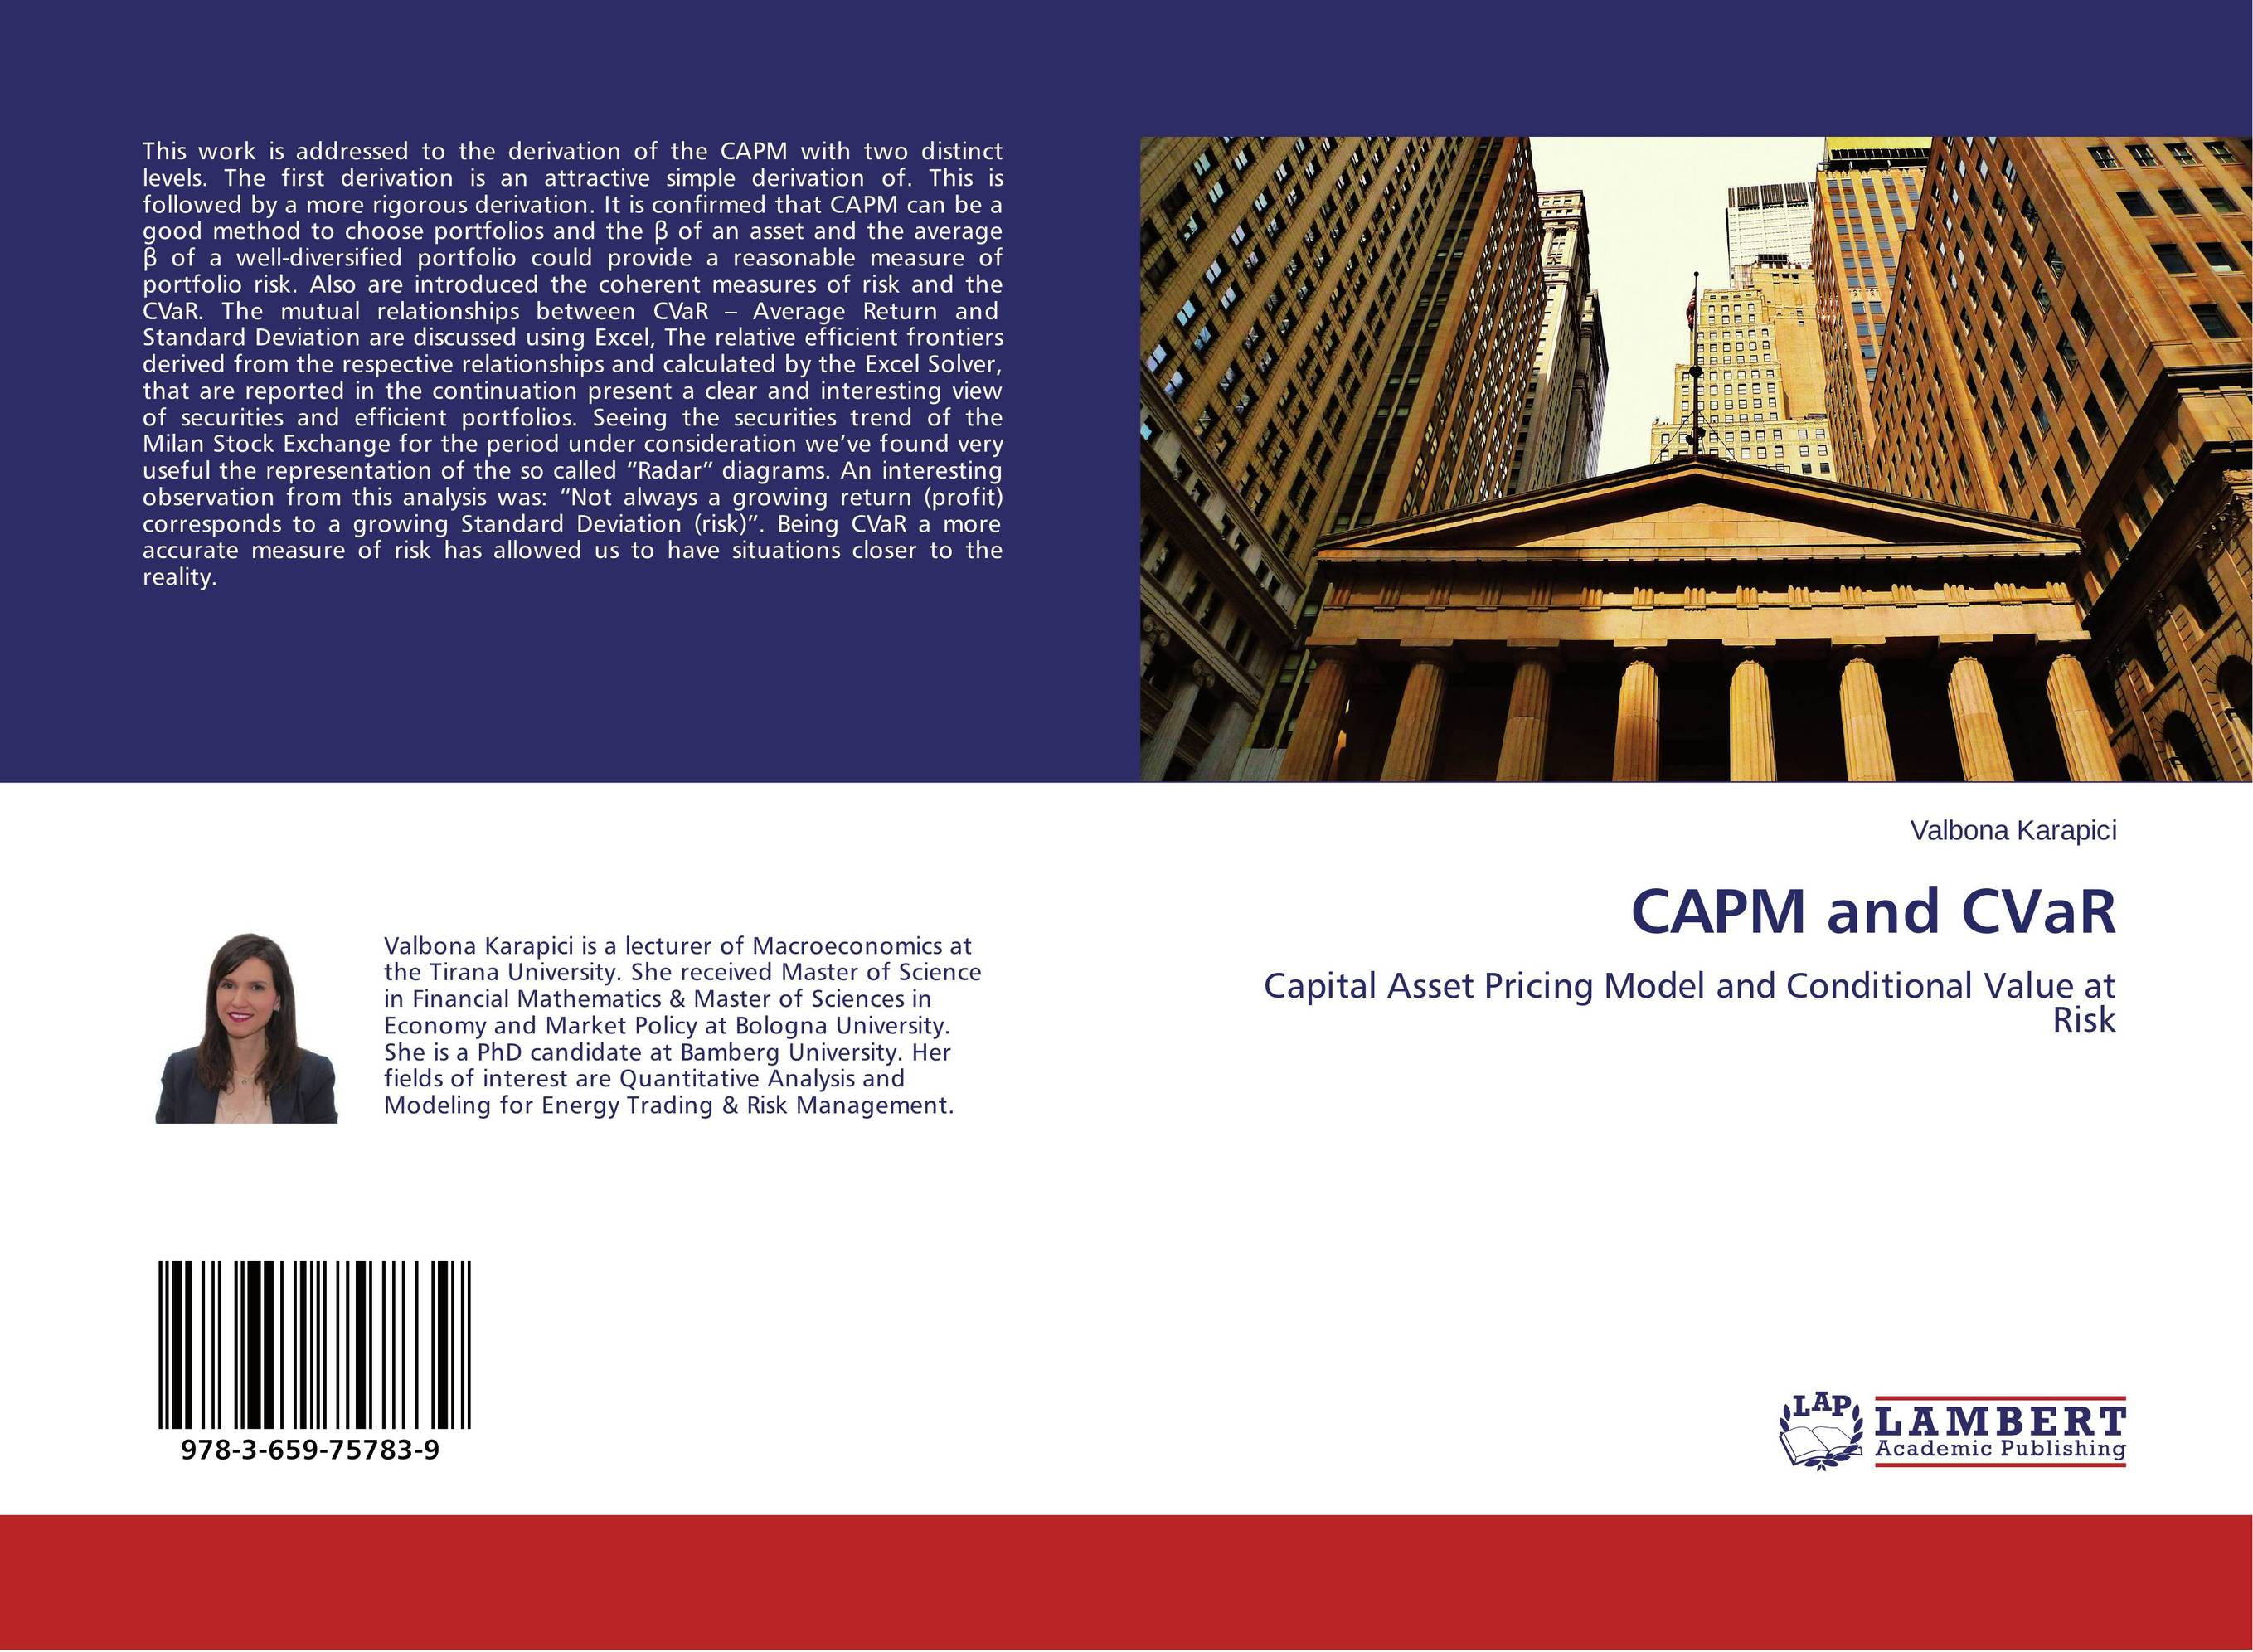 capm financial management What is capm meaning of capm as a finance term capital asset pricing model a model that attempts to describe the relationship between the risk and the expected return on an investment that.